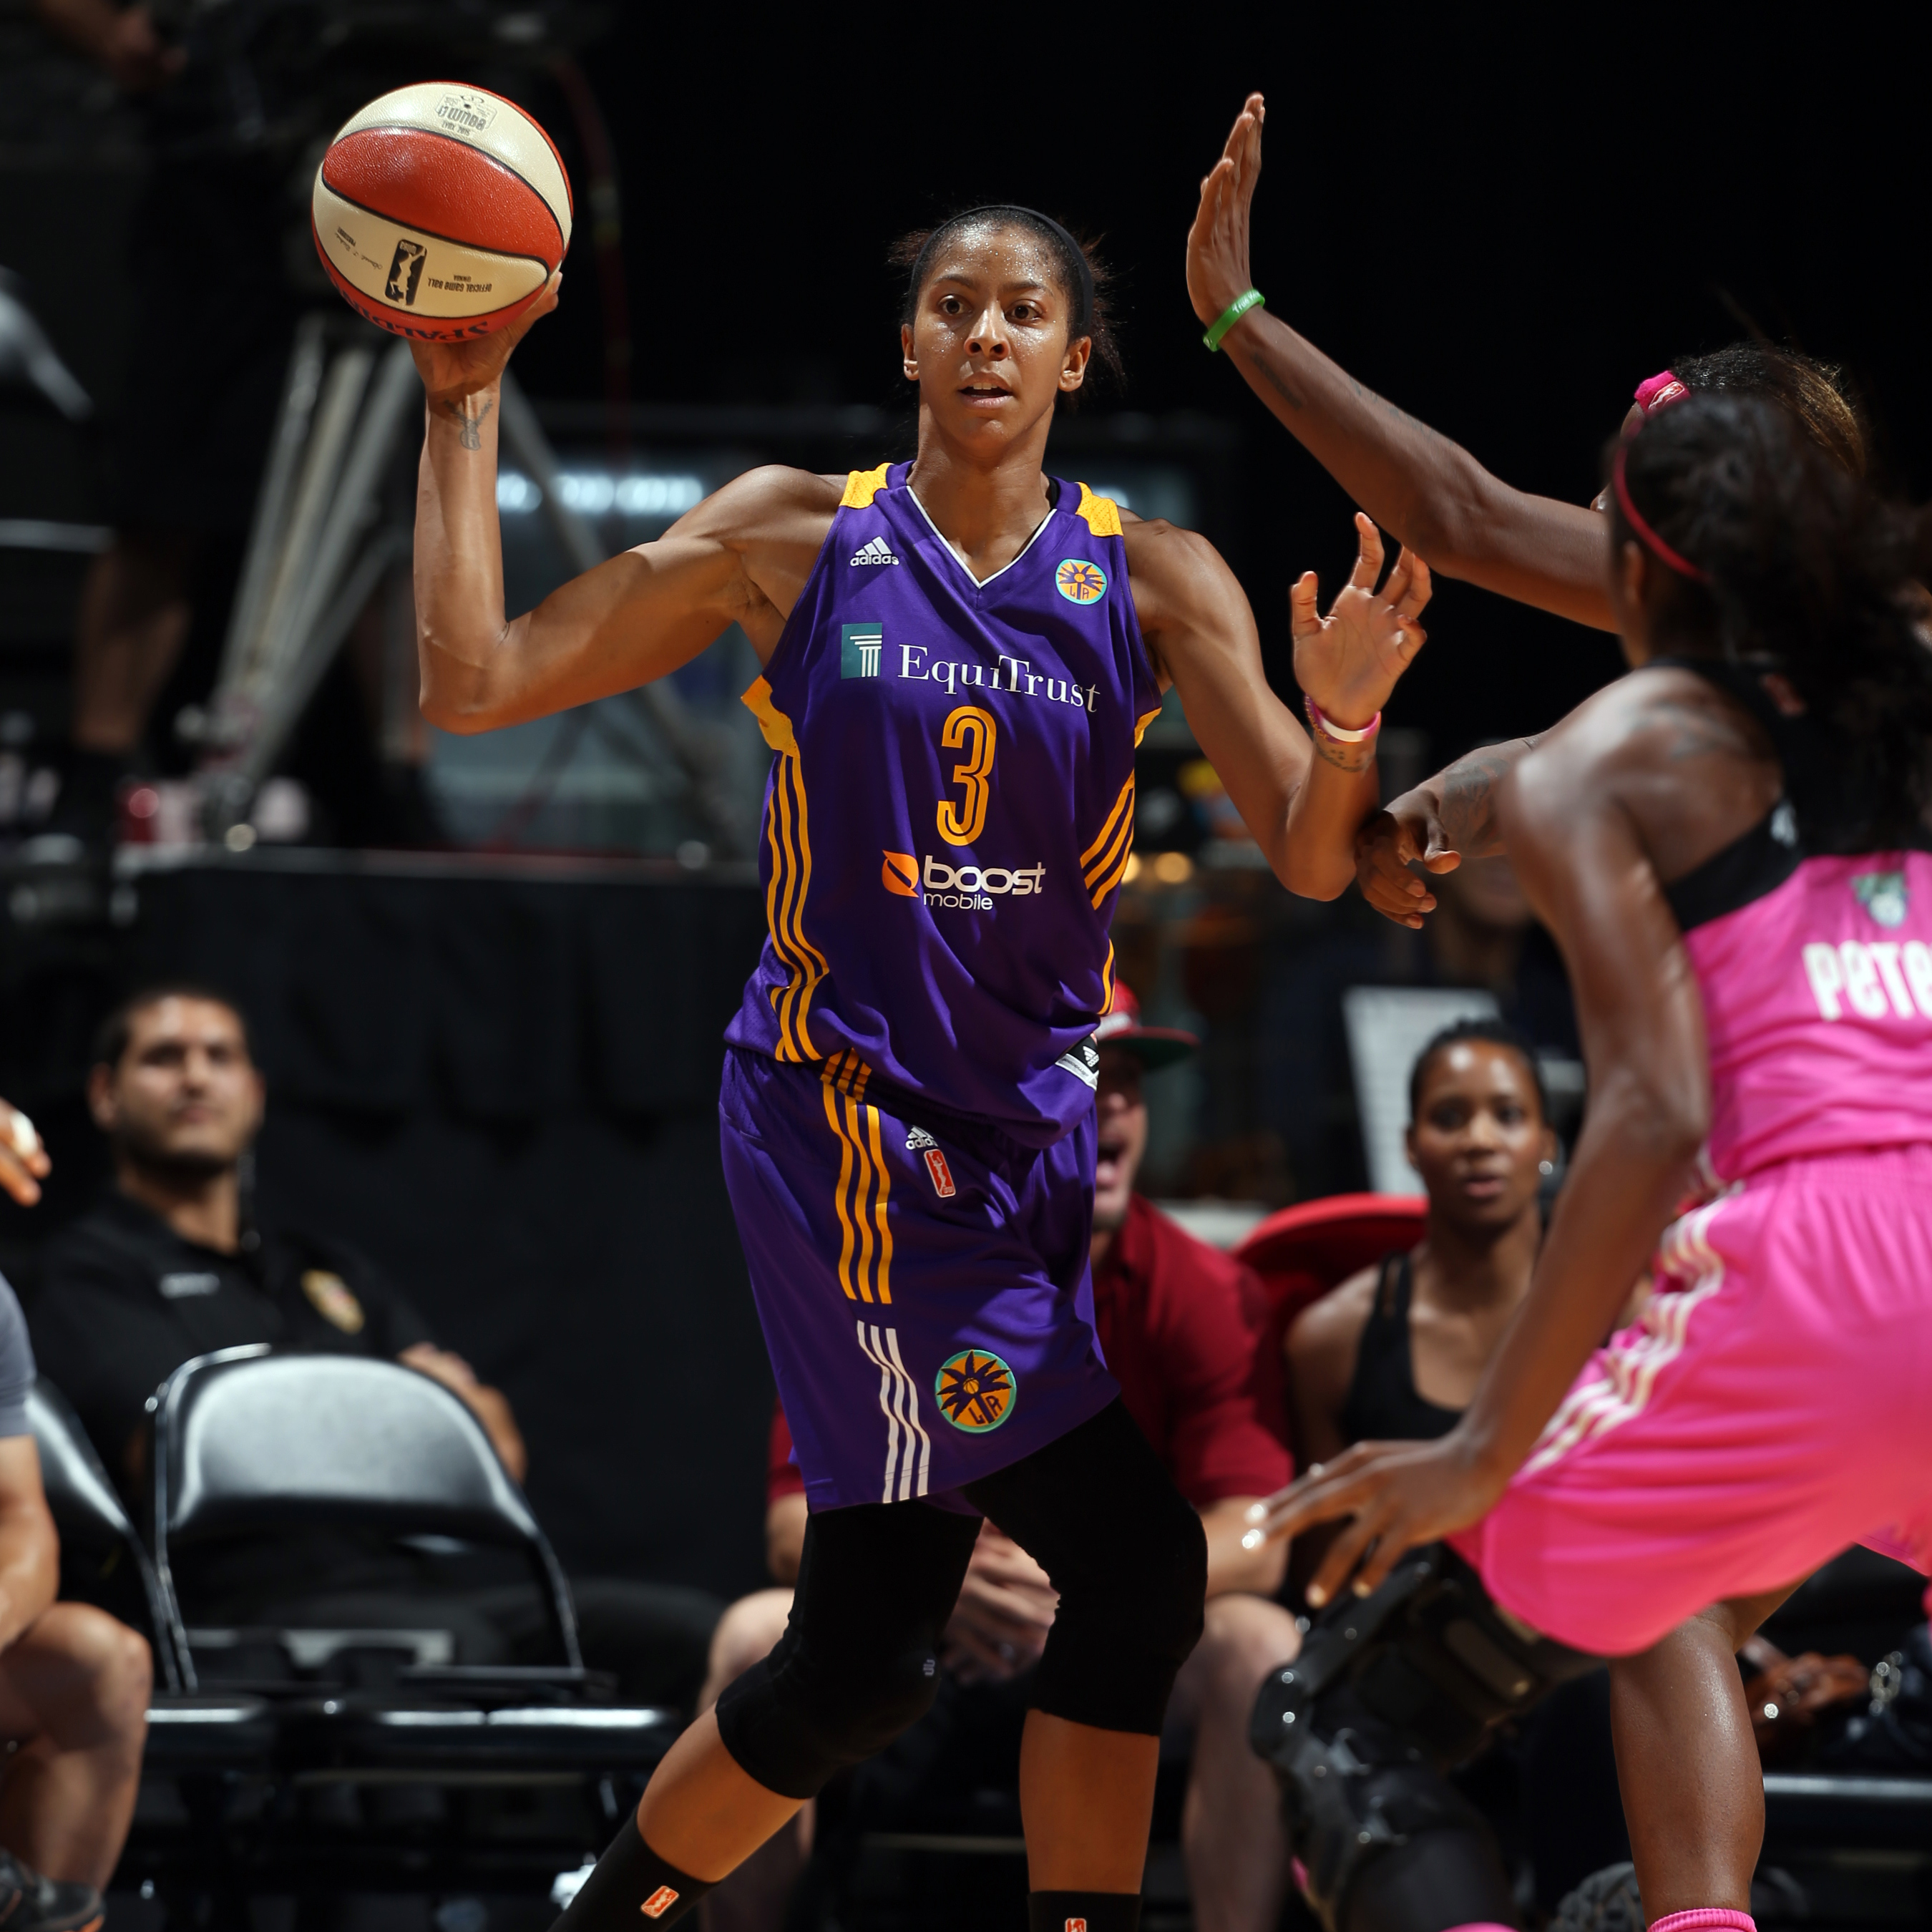 Sparks forward Candace Parker continued to do it all for Los Angeles, helping her team in multiple areas every single night this season. Against the Lynx, Parker finished the night with 10 points, eight rebounds, six assists, two steals and three blocked shots in the Sparks' loss.